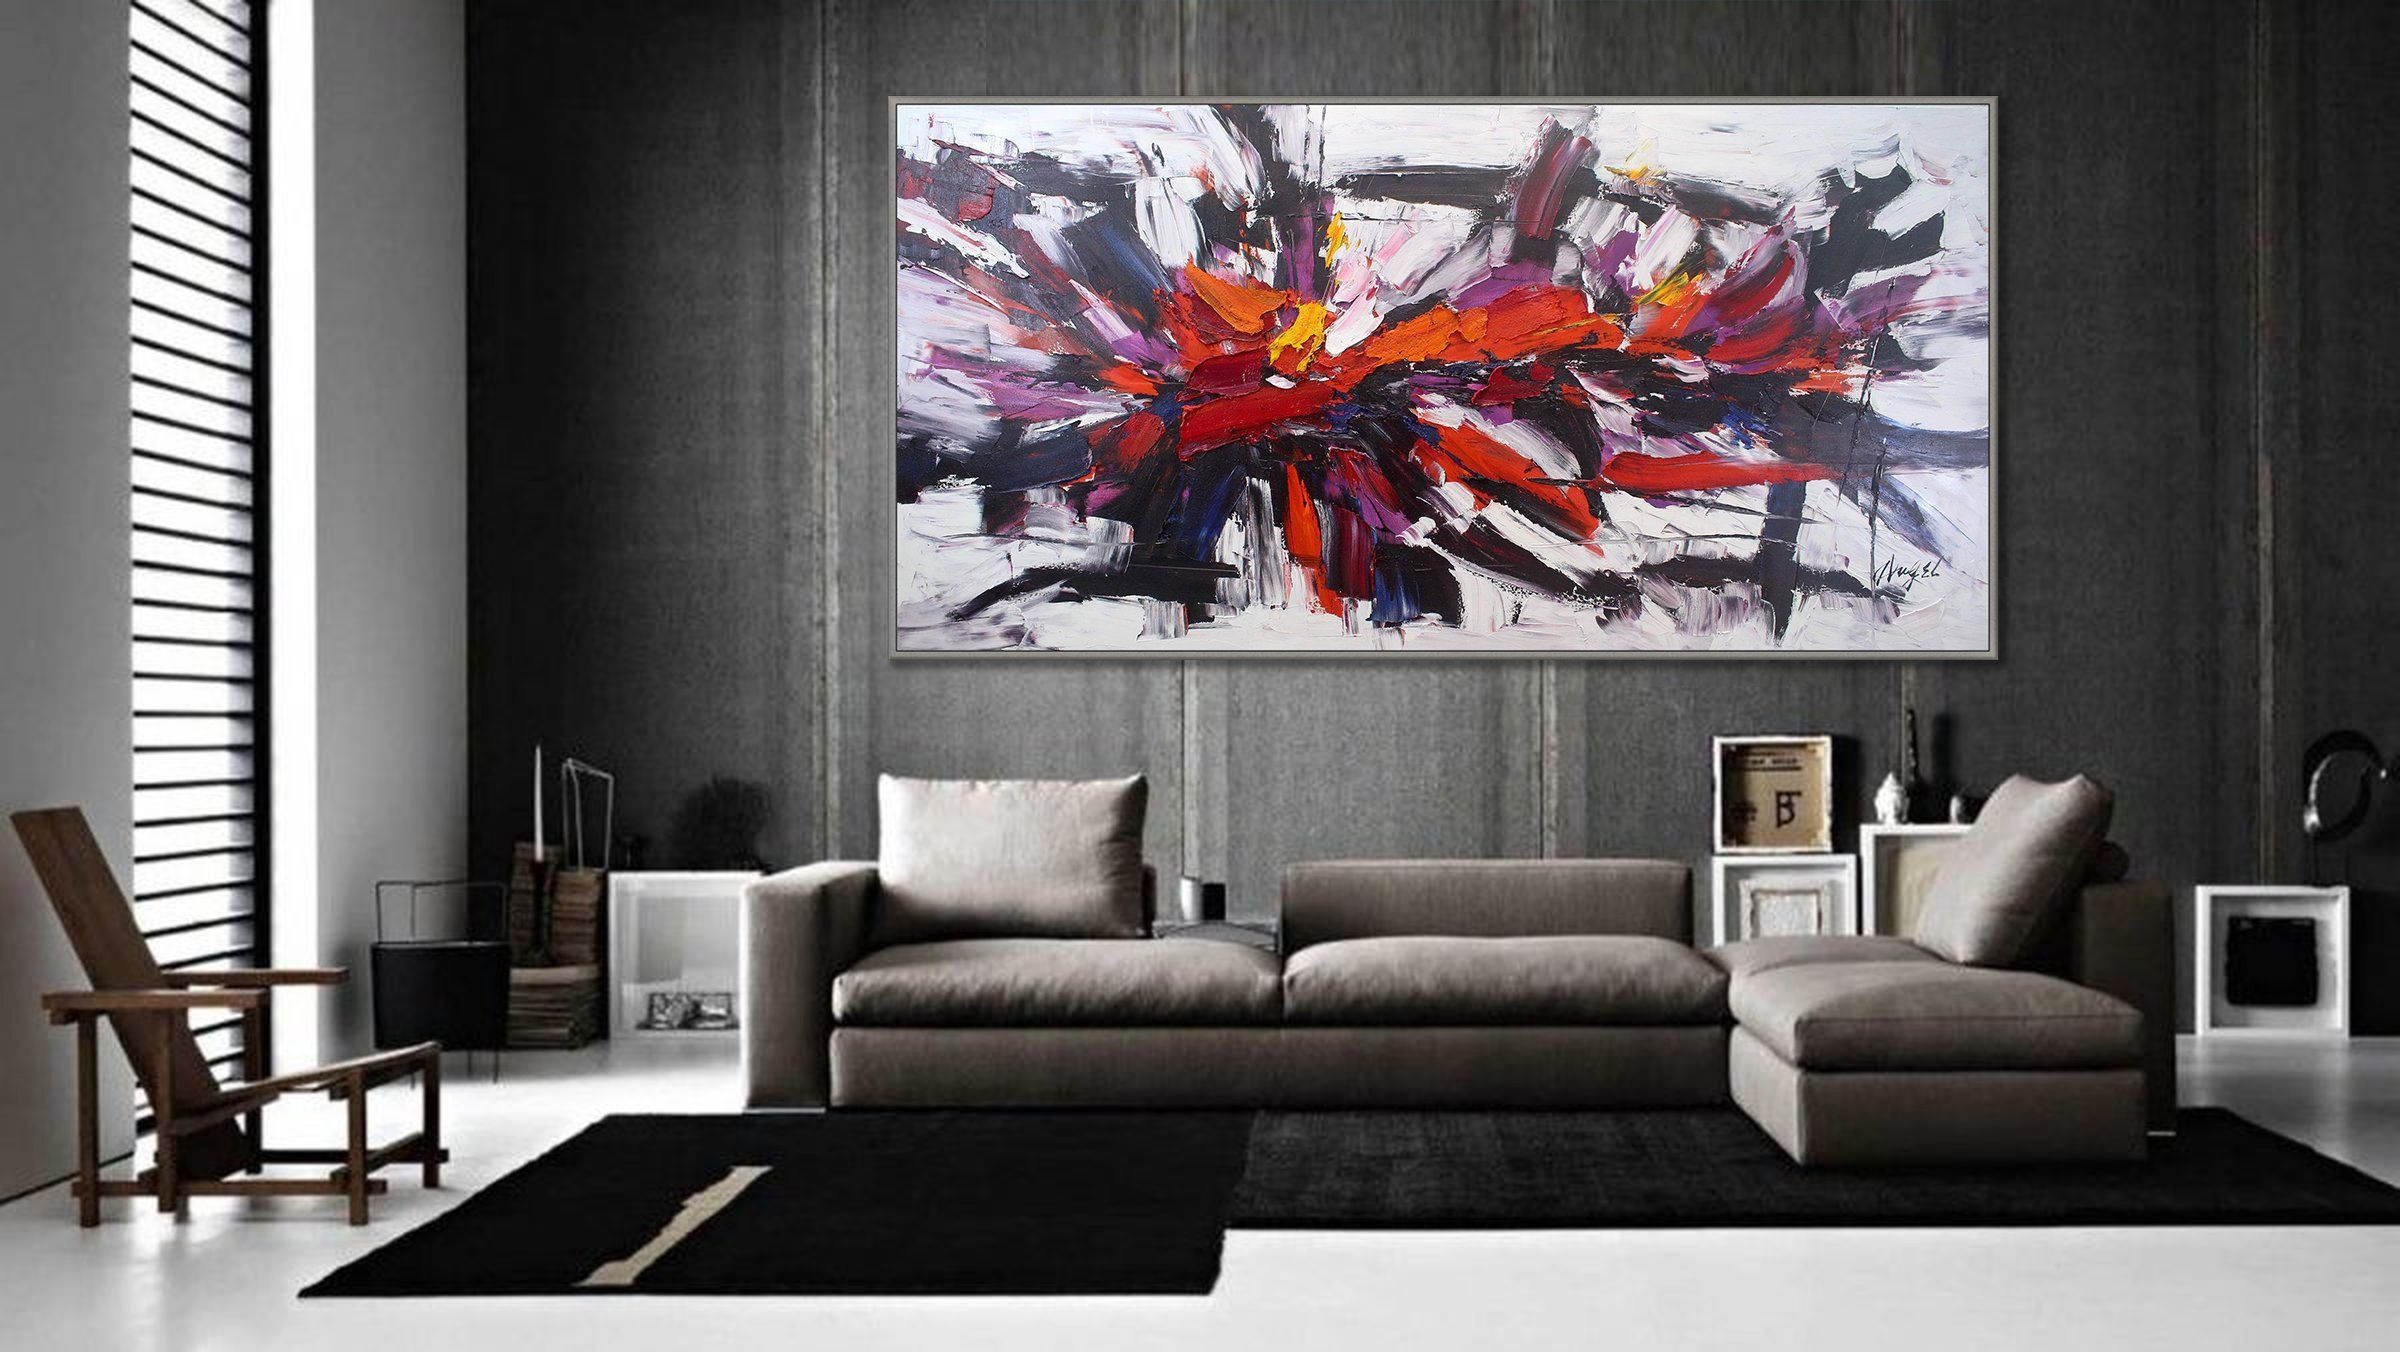 Original oil painting on canvas red black extra large modern abstract wall art texture palette knife modern art oversize 48x96 120x240cm